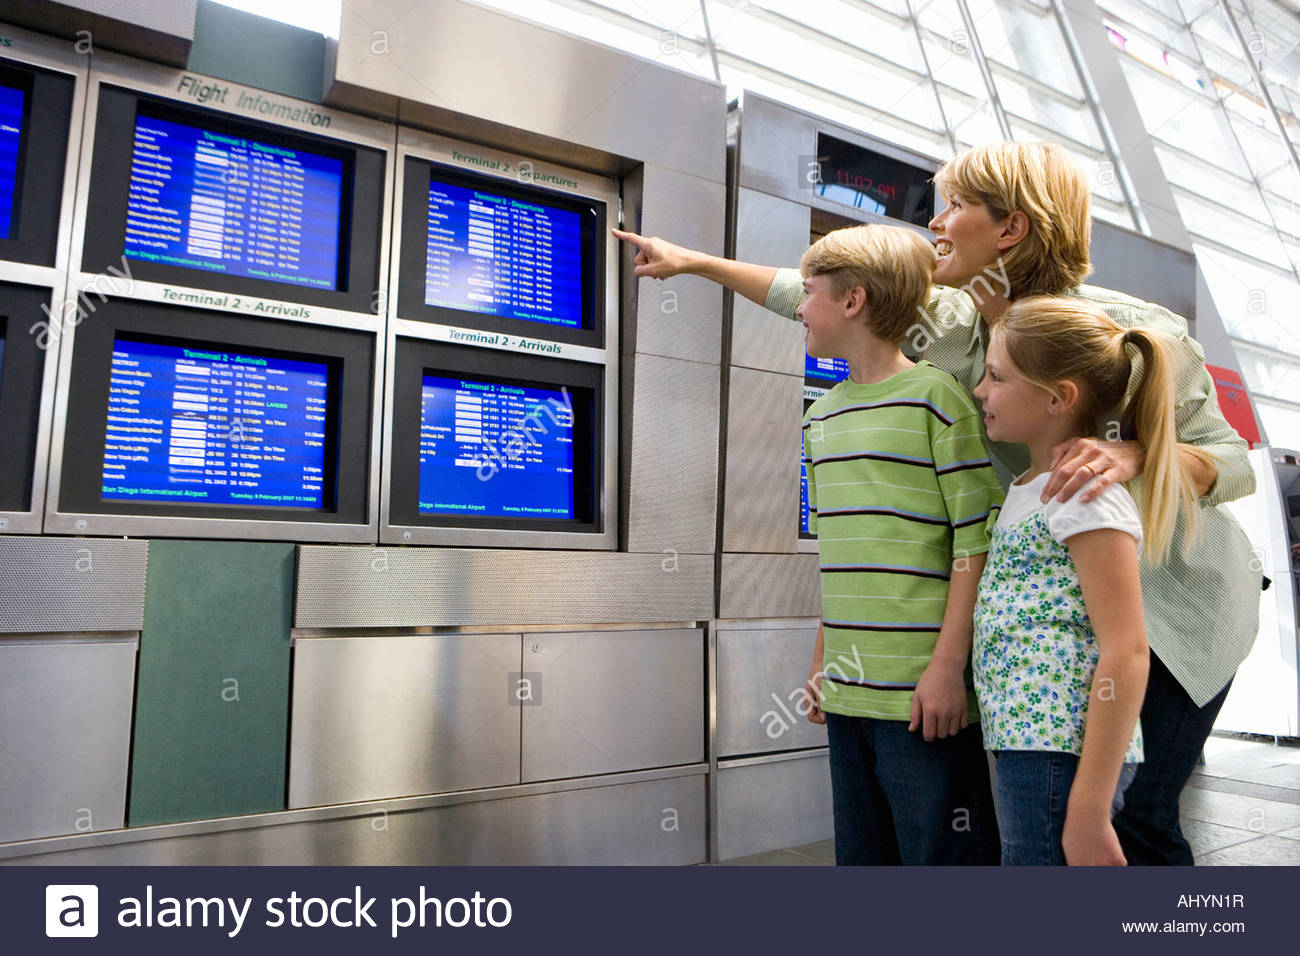 Mother and children looking at flight information screen in airport departure lounge, woman pointing, smiling - Stock Image